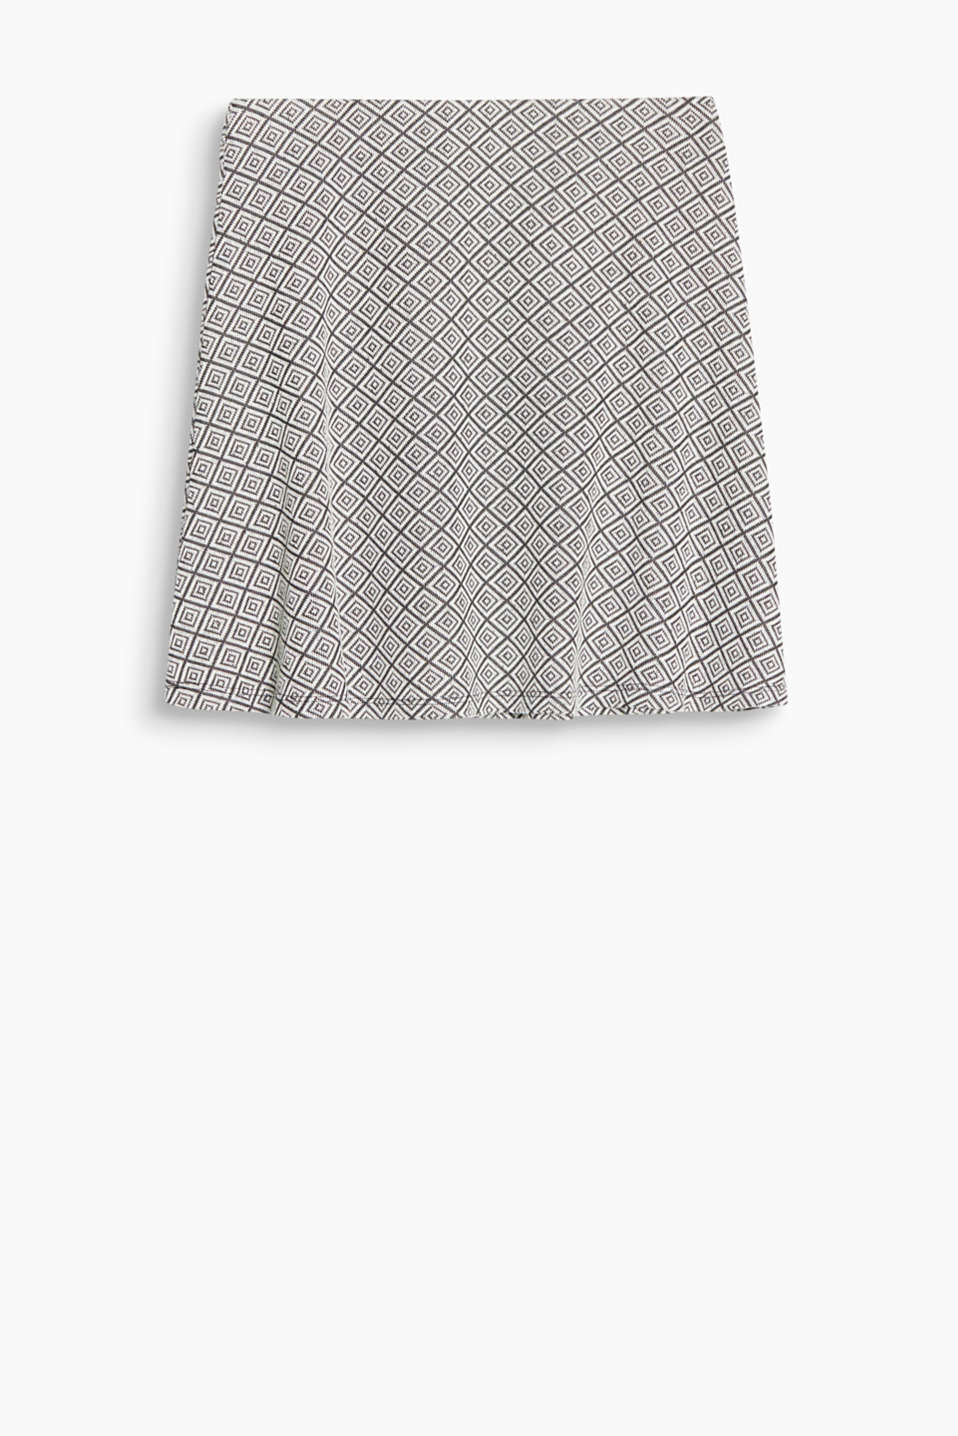 For a full-swing retro look: jacquard skirt made of soft jersey in a feminine A-line